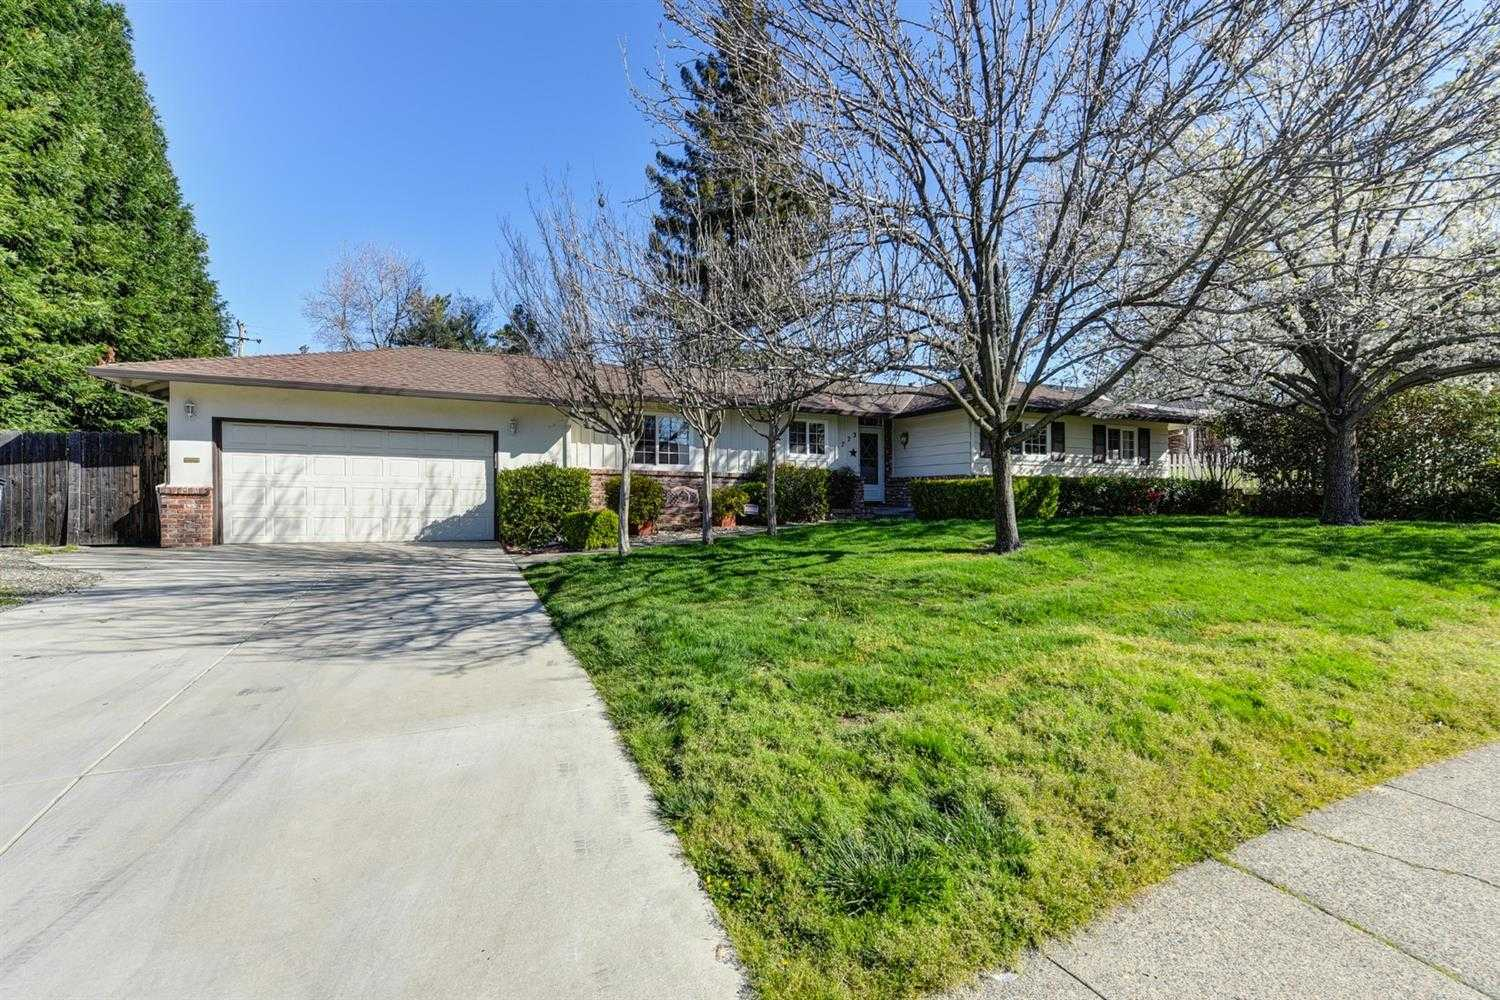 $400,000 - 4Br/2Ba -  for Sale in Citrus Heights